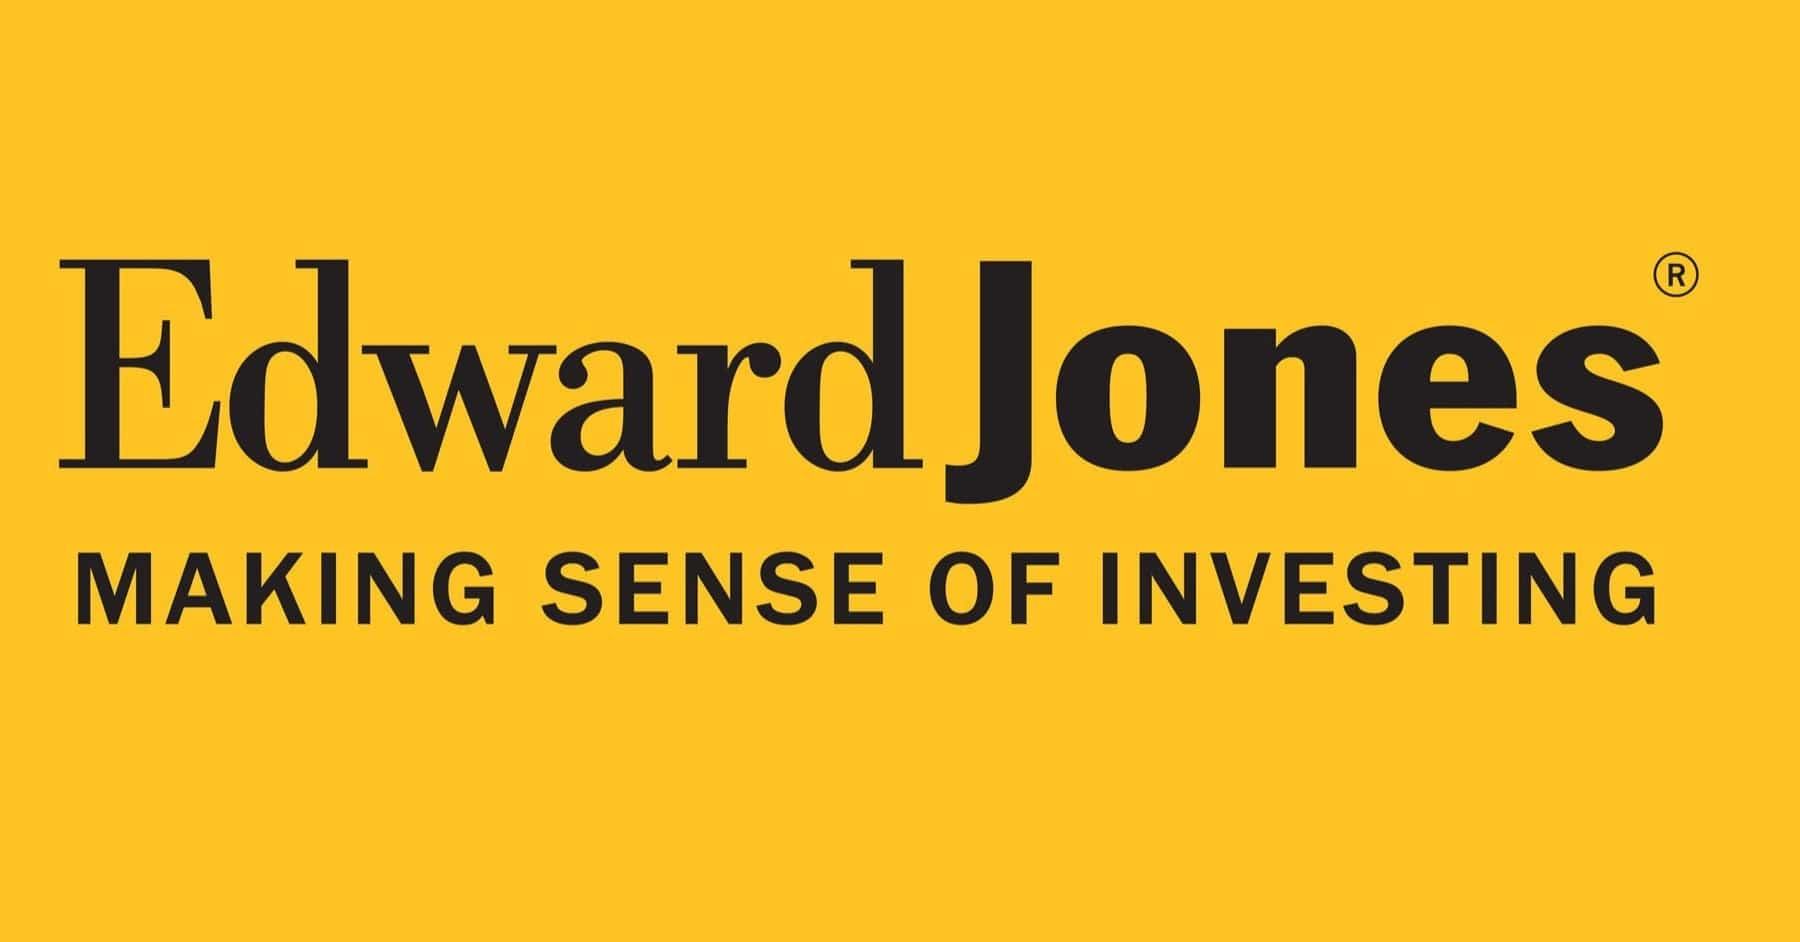 Logotipo de Edward Jones